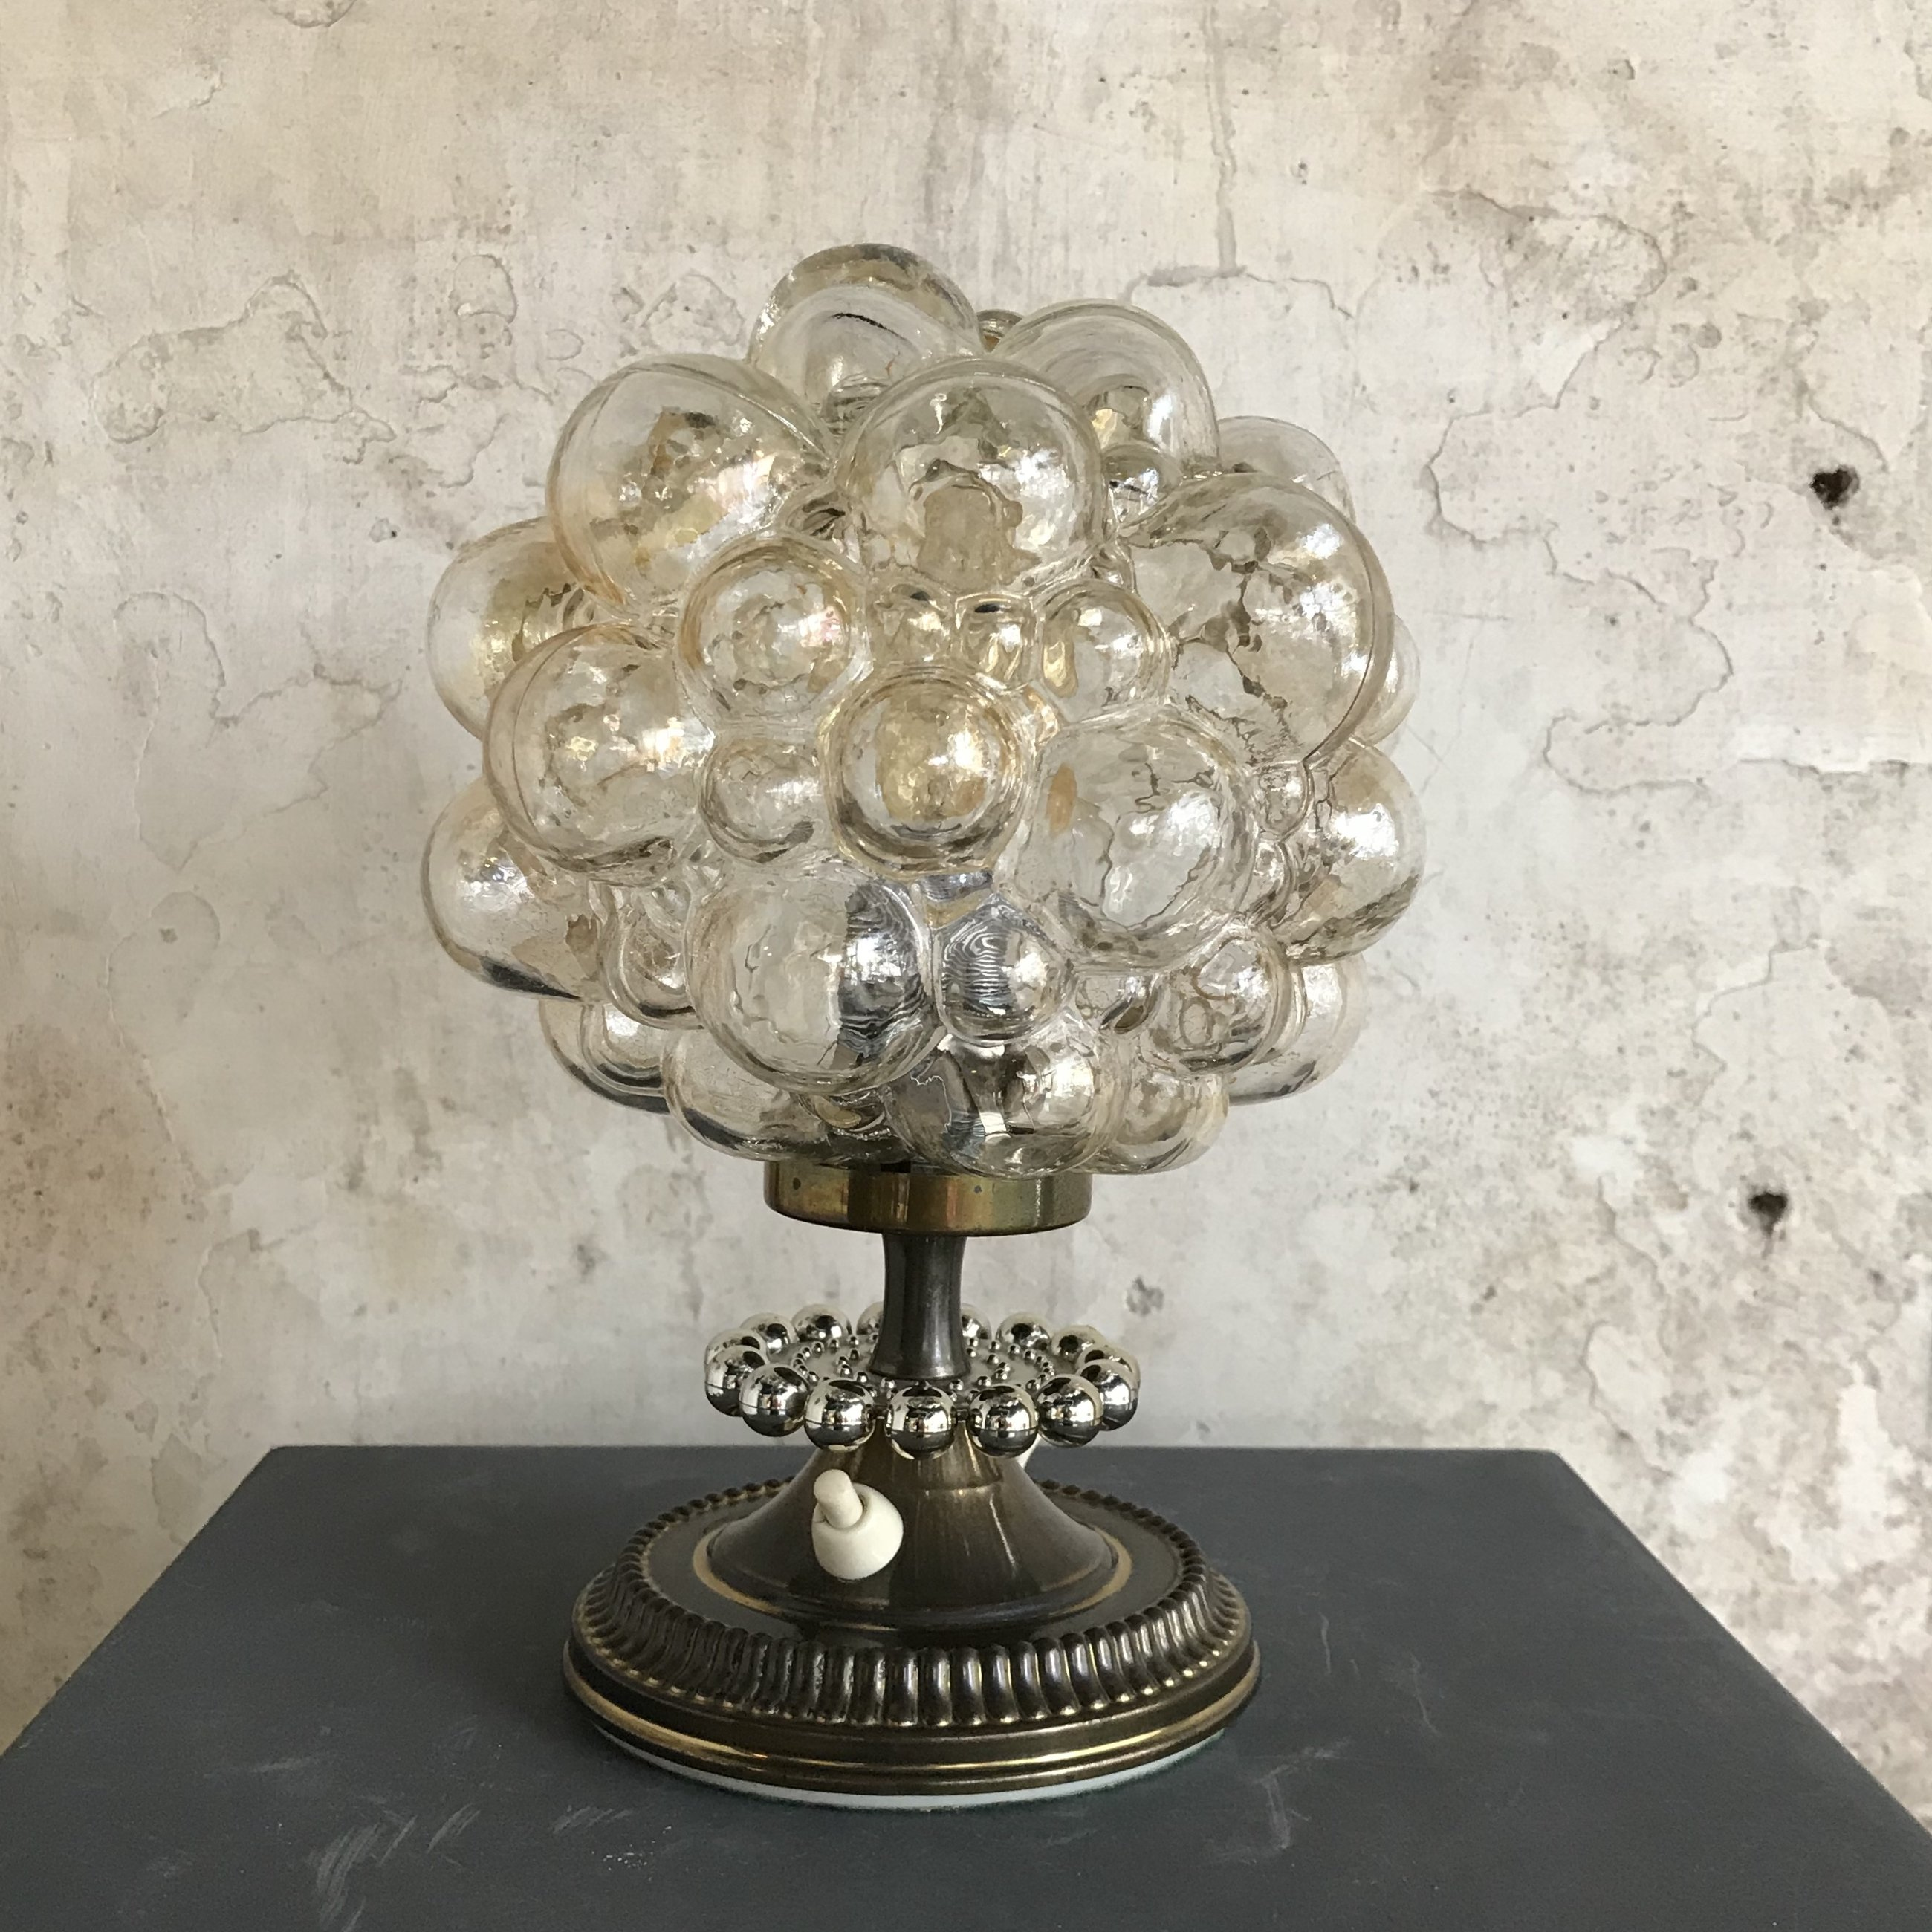 Mid Century Bubble Lamp By Helena Tynell For Glashutte Limburg 1960s 91388